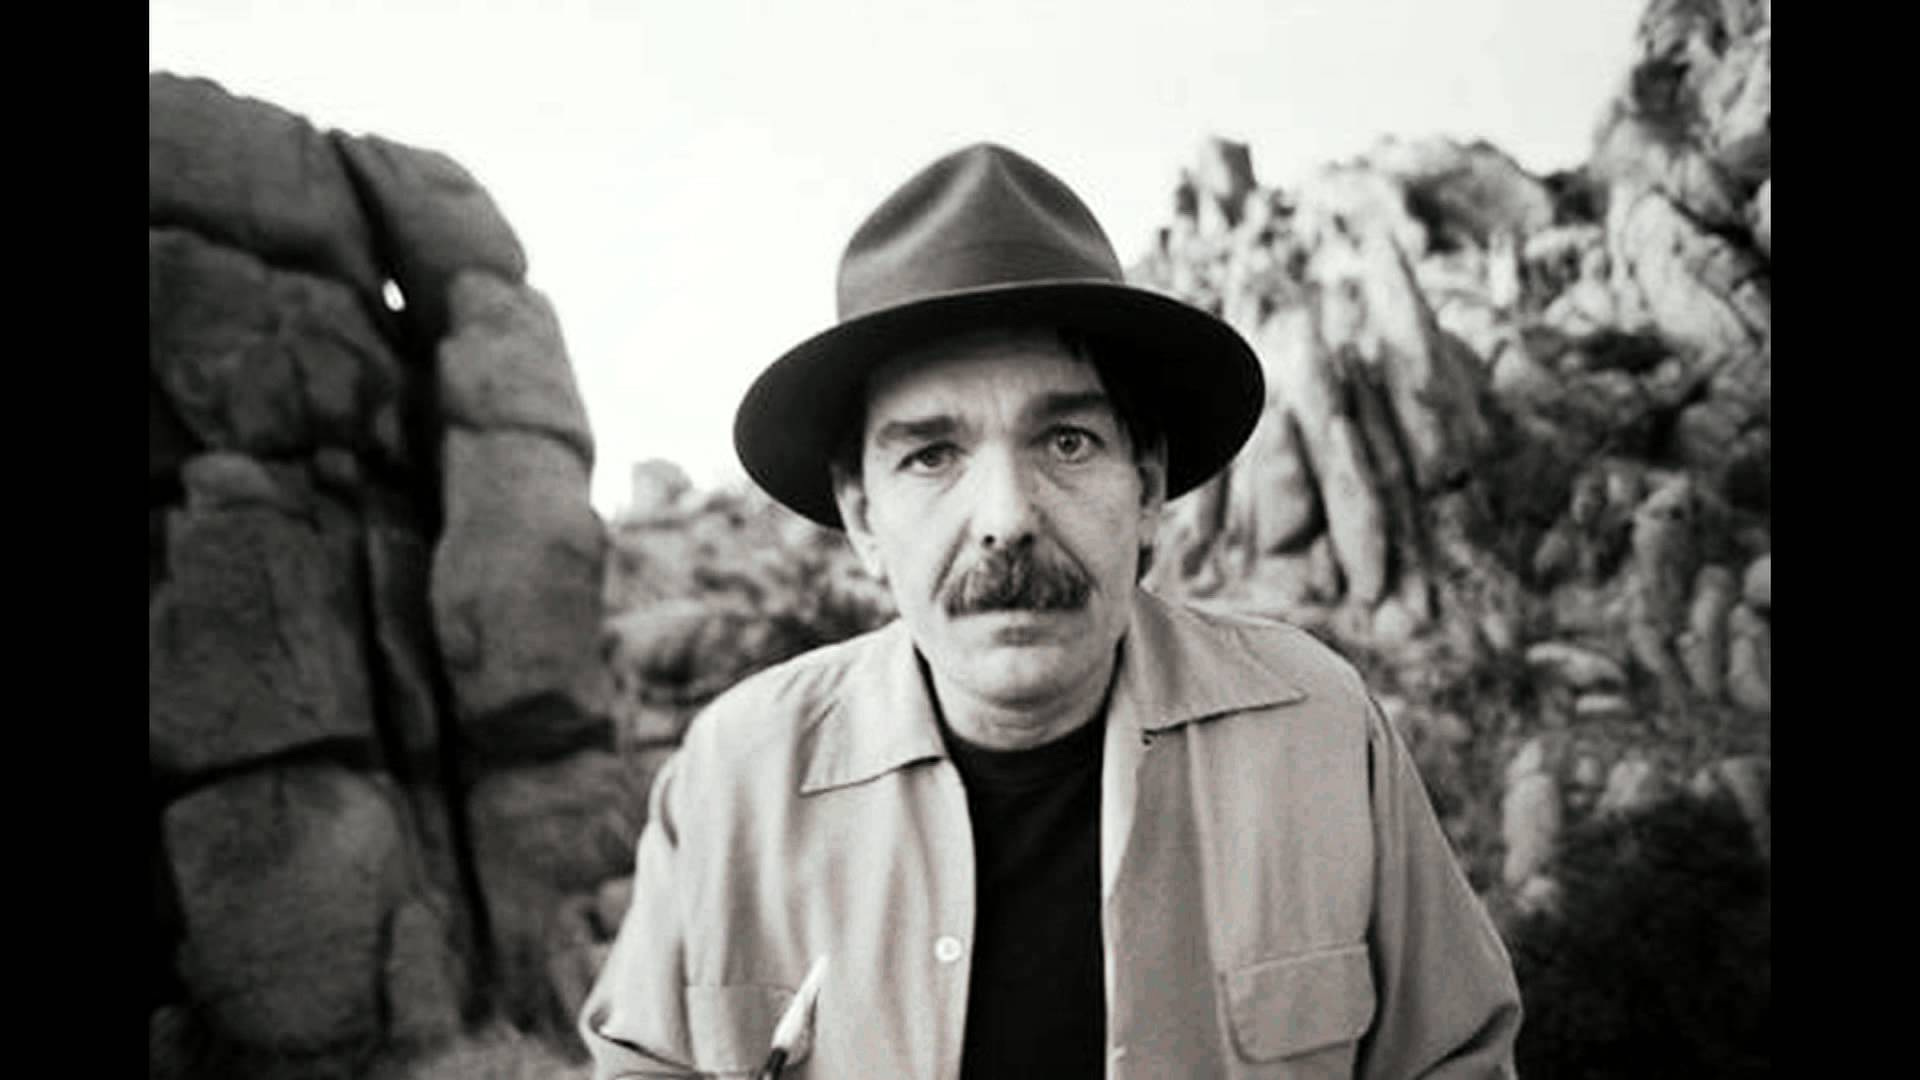 Captain Beefheart & His Magic Band - Odd Jobs (2012 remaster)